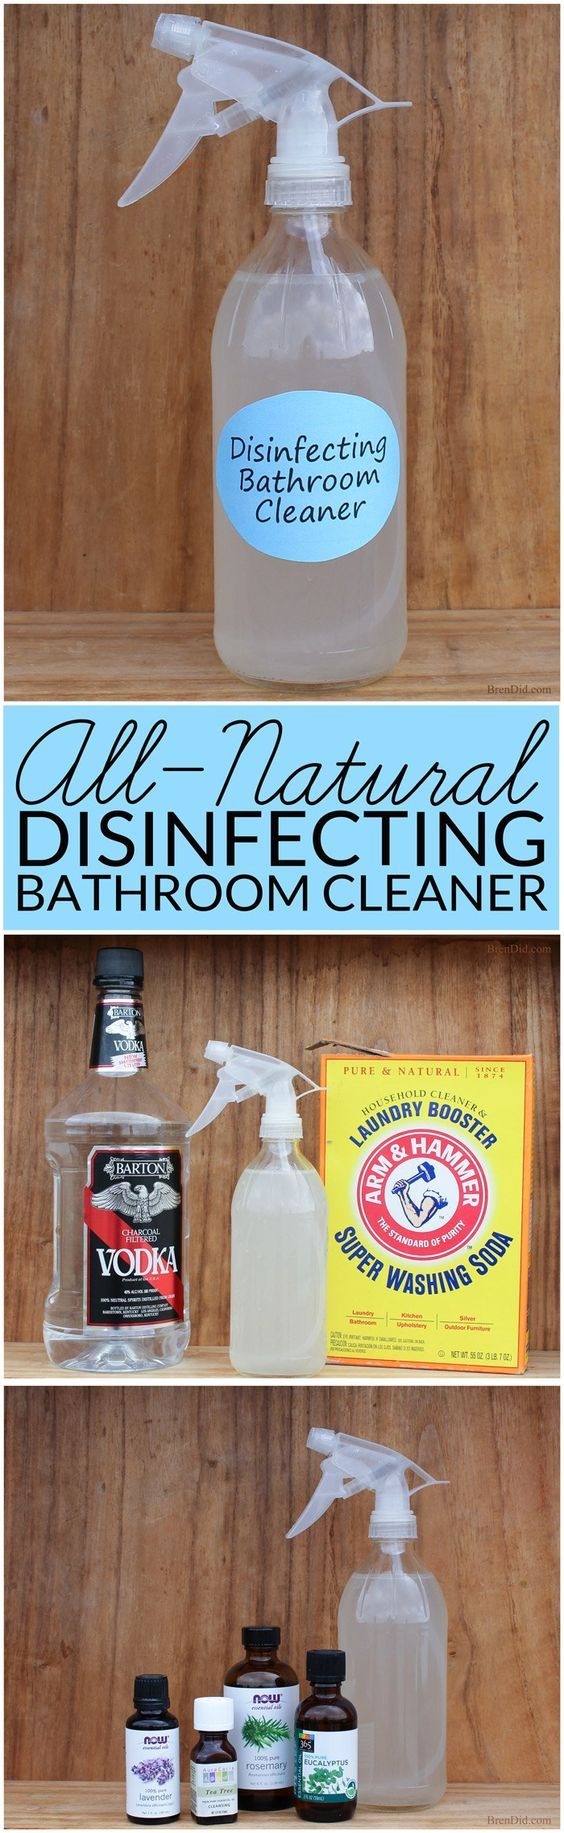 Natural Bathroom Disinfectant Cleaner | Natural bathroom ...